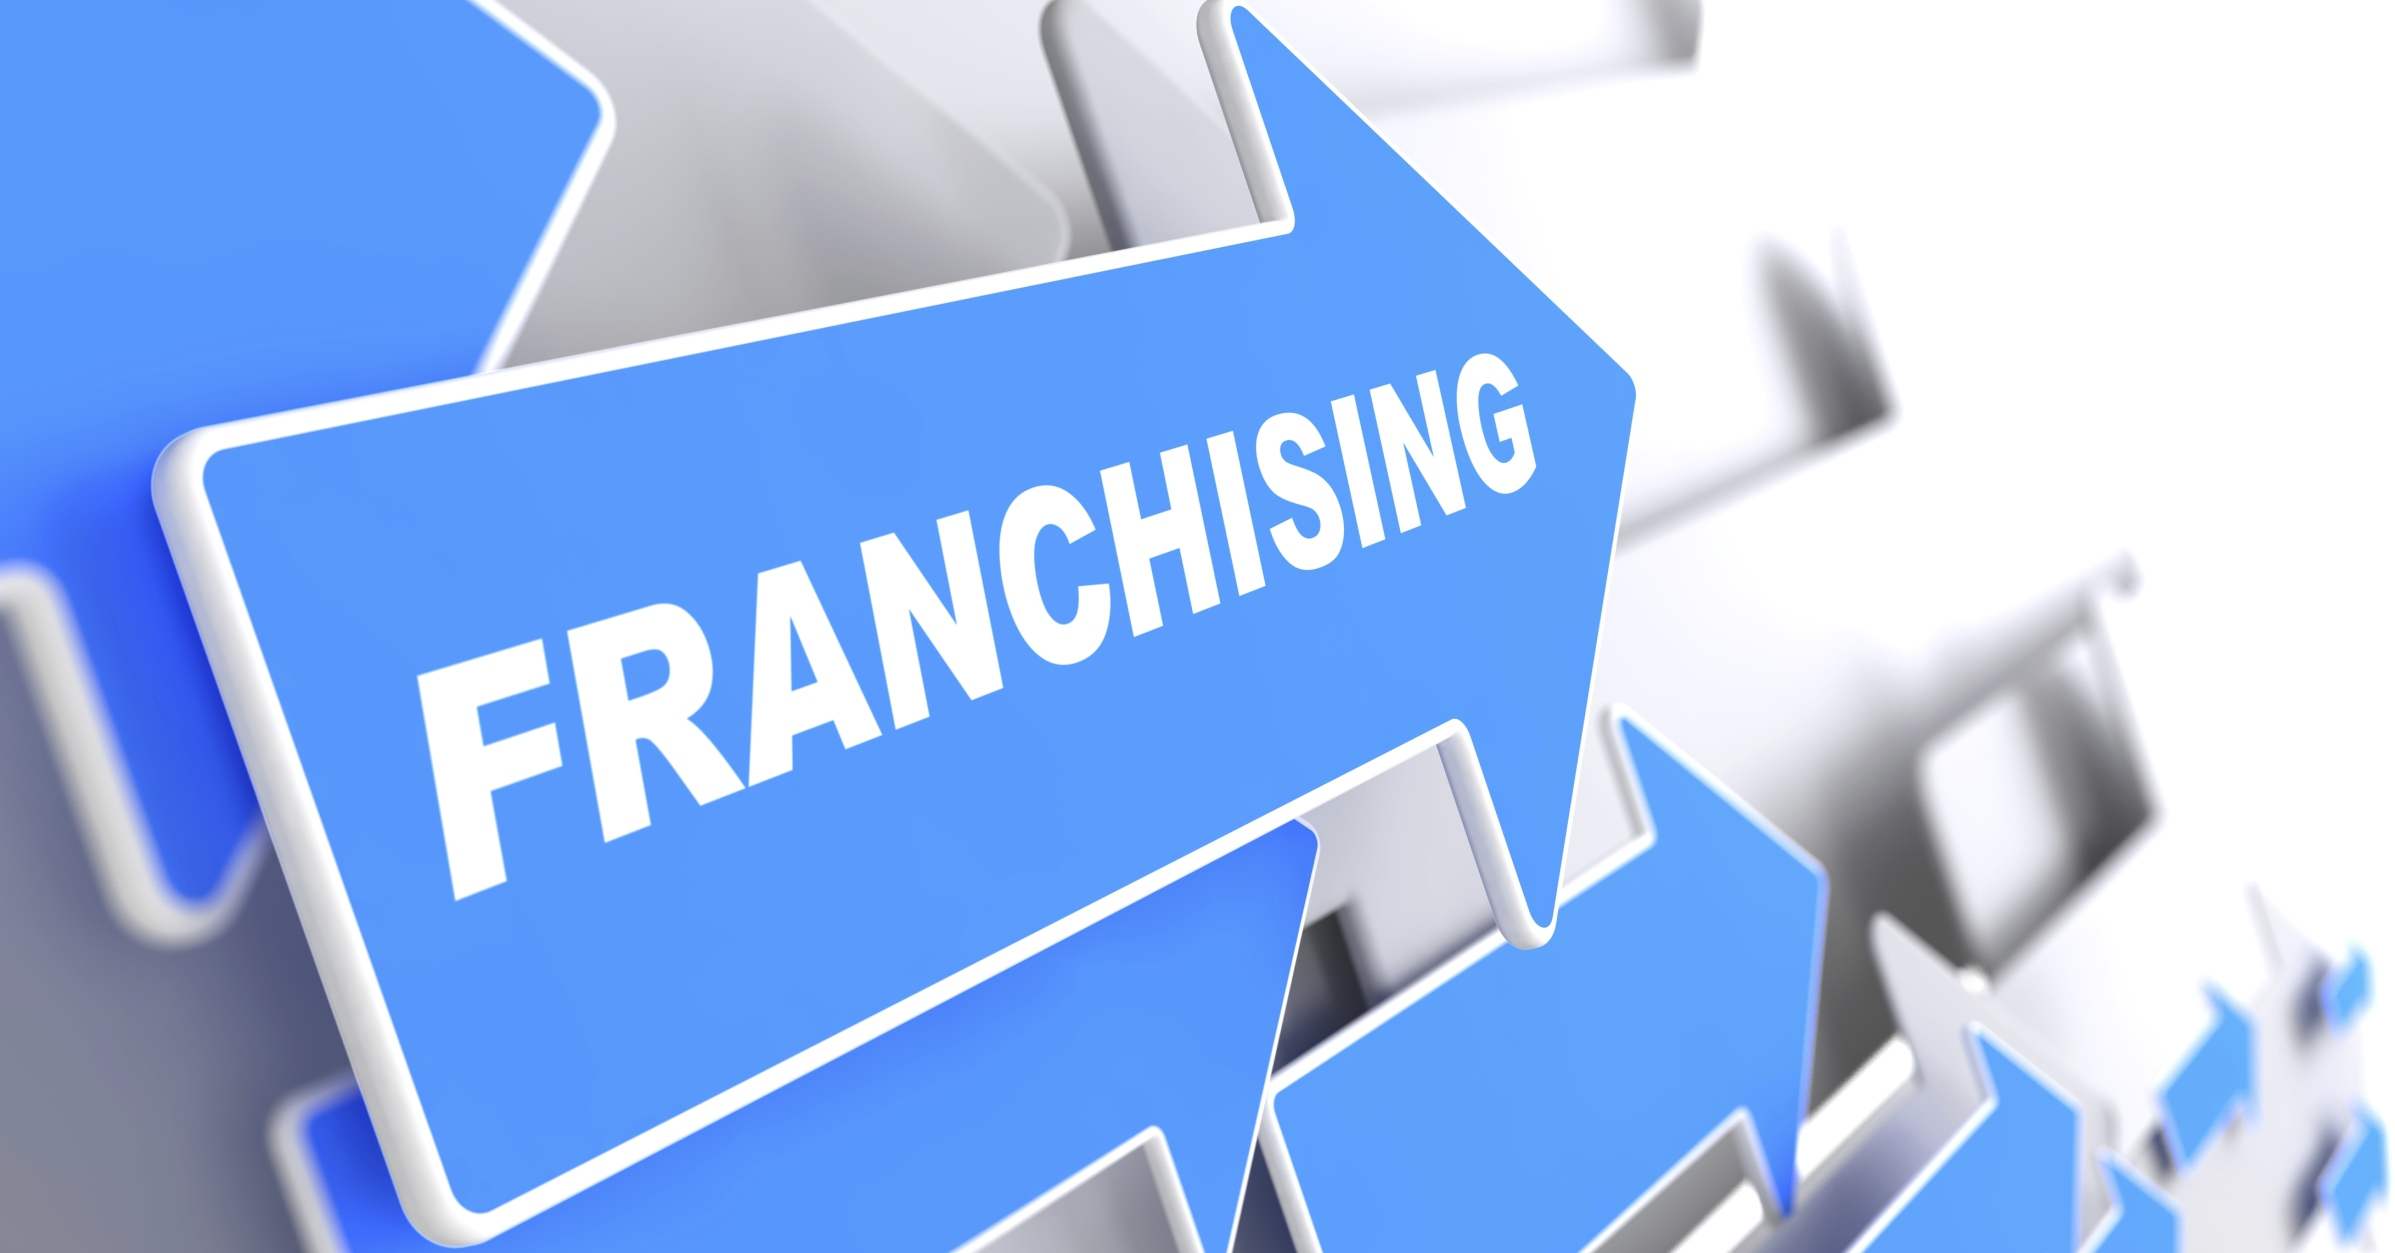 Franchising and blue arrows